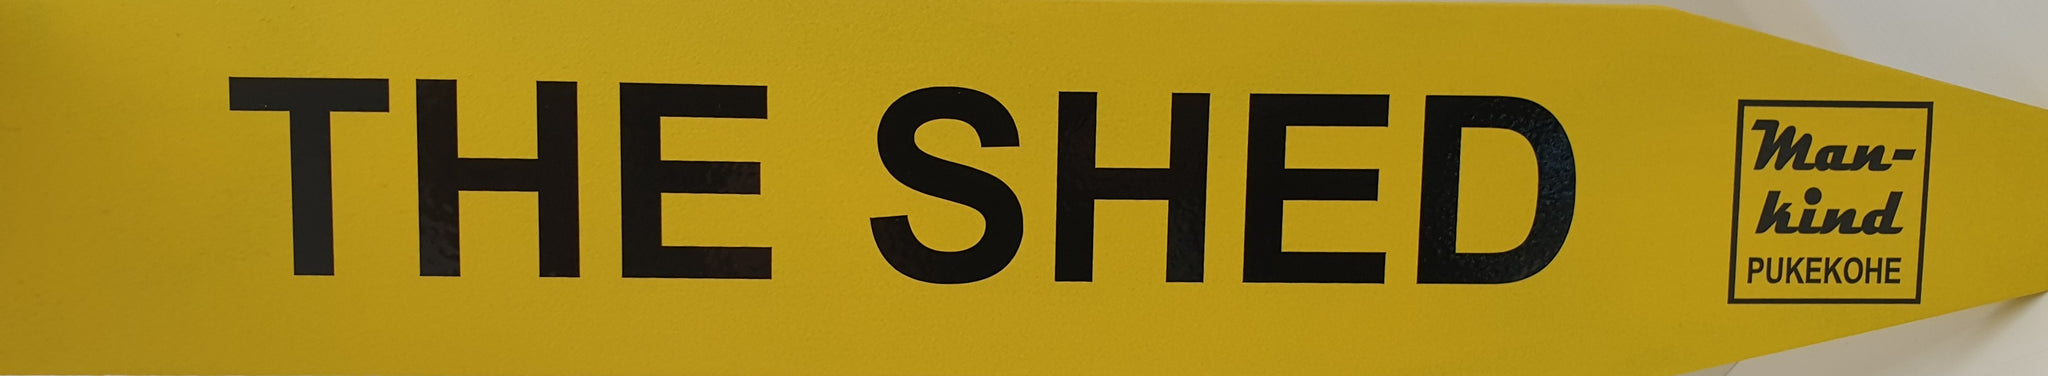 Street Sign 'The Shed'